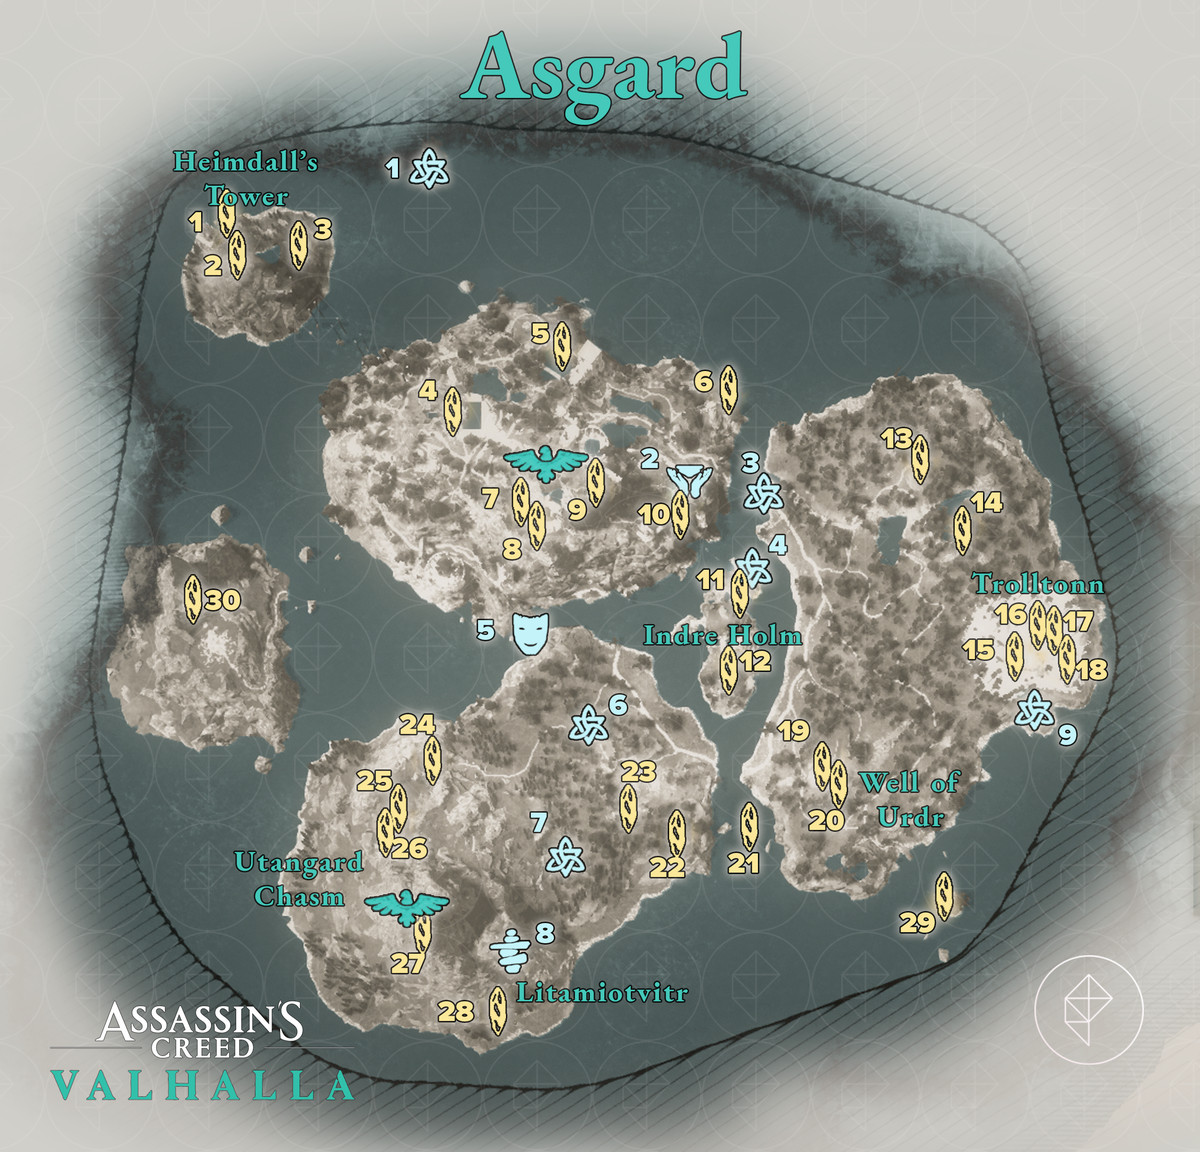 Asgard Wealth, Mysteries, and Artifacts locations map